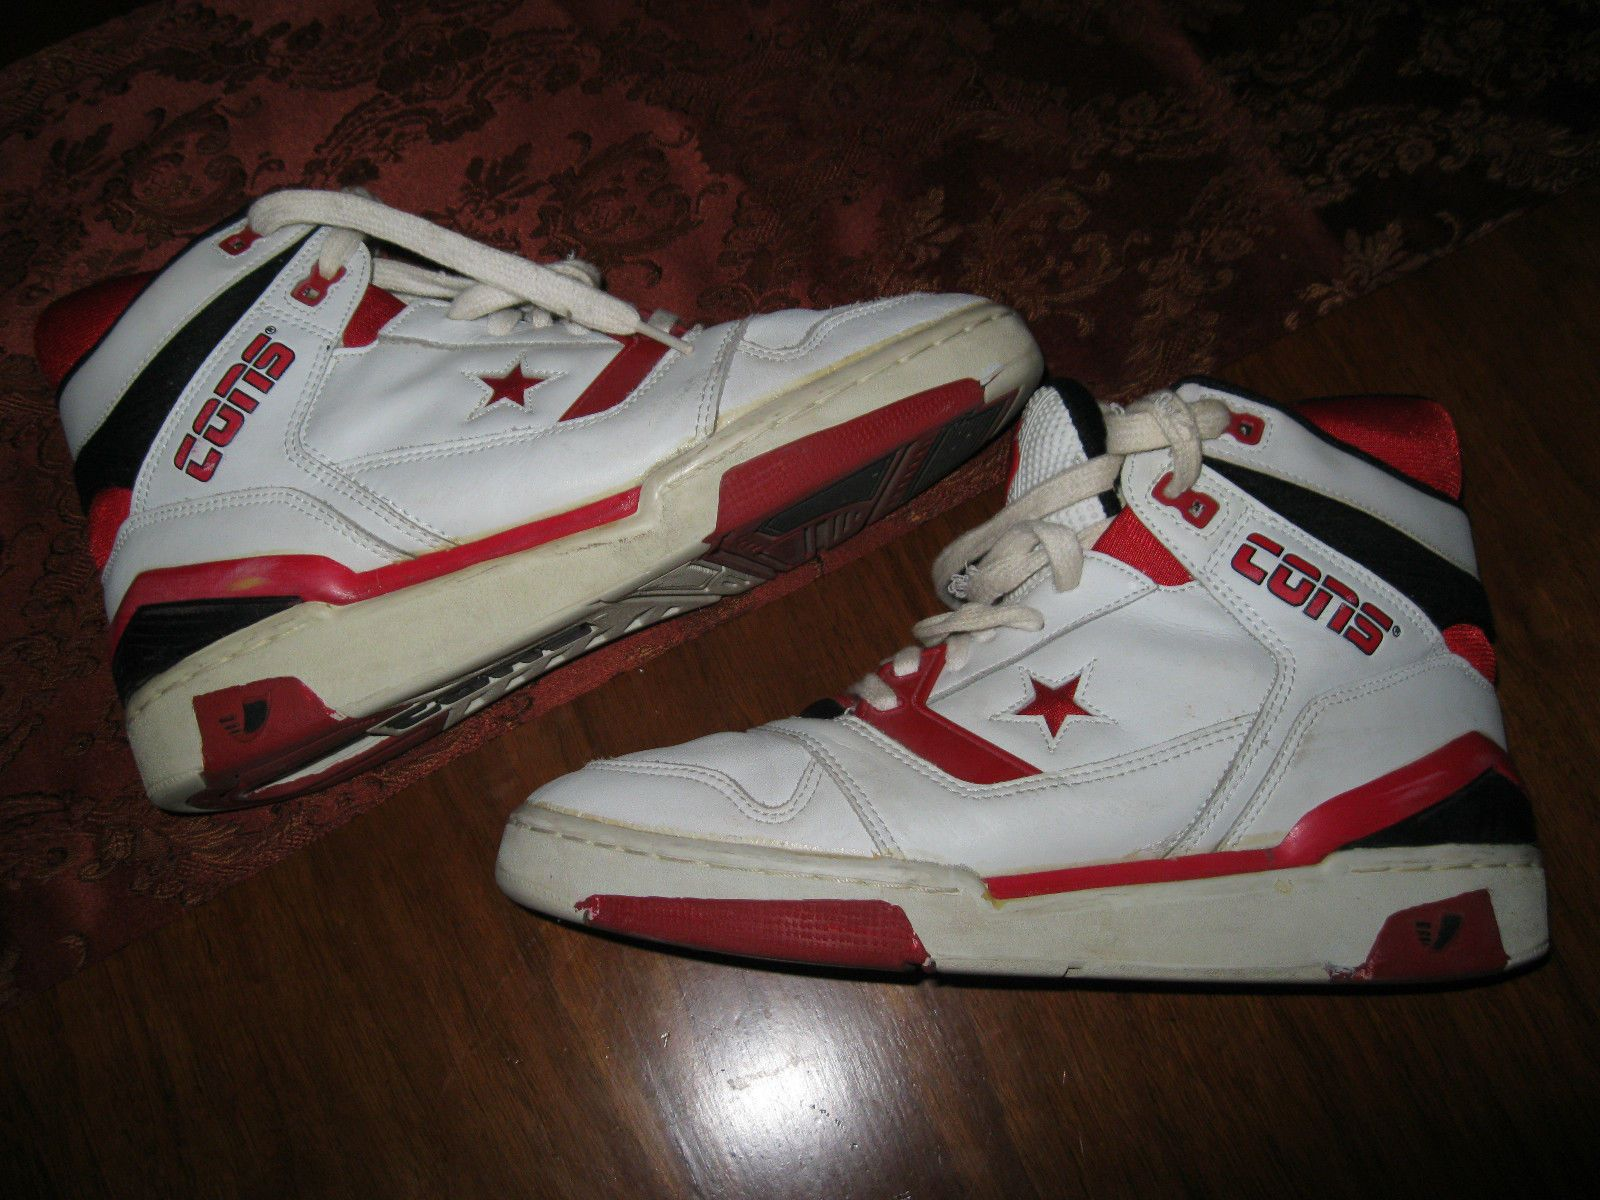 CONVERSE VINTAGE ERX 250 BASKETBALL SHOES | eBay | Botas